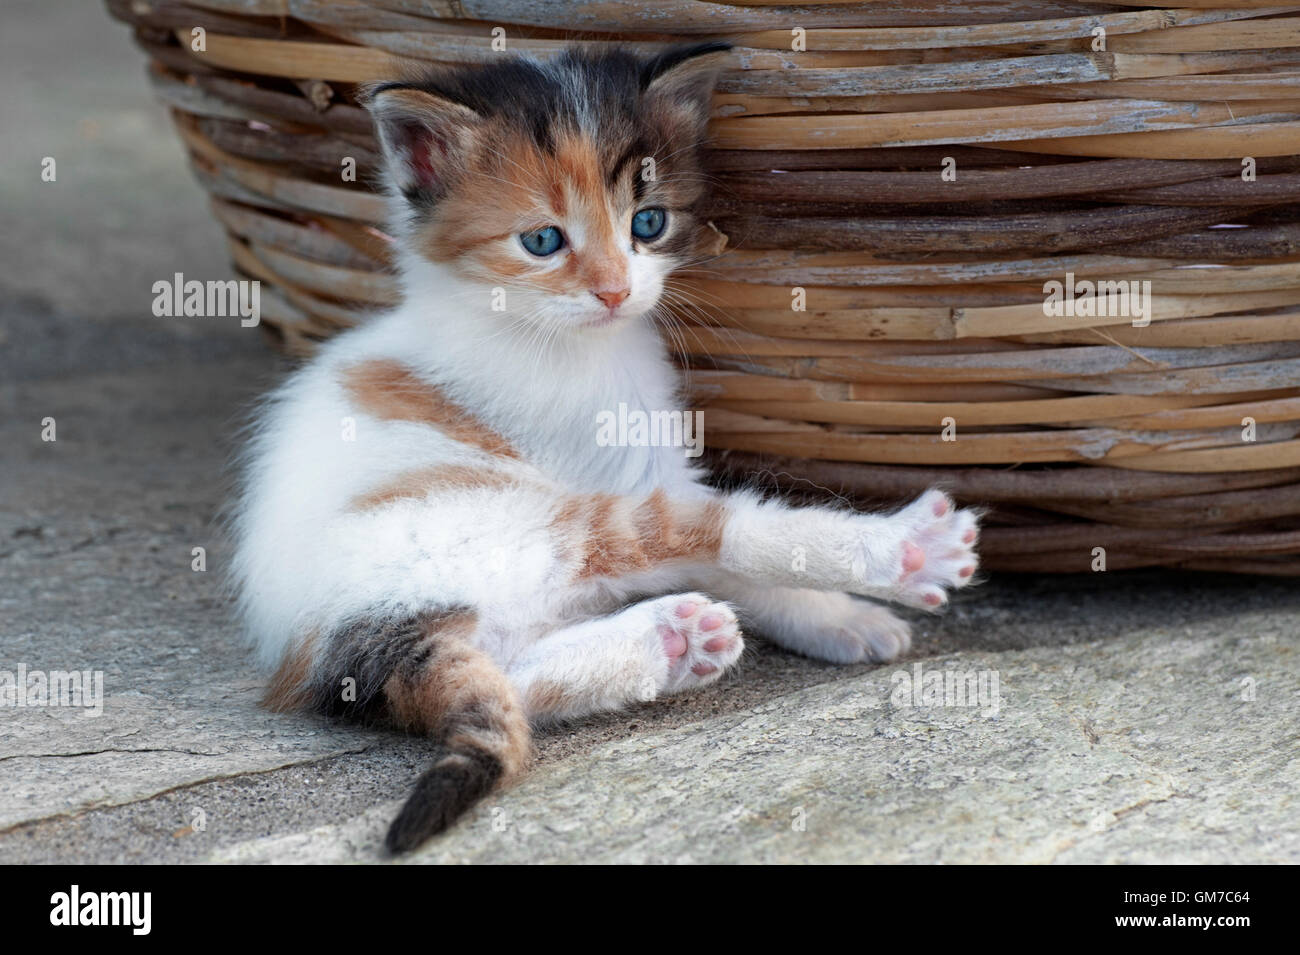 Four weeks old calico kitten lying next to a basket outdoors - Stock Image